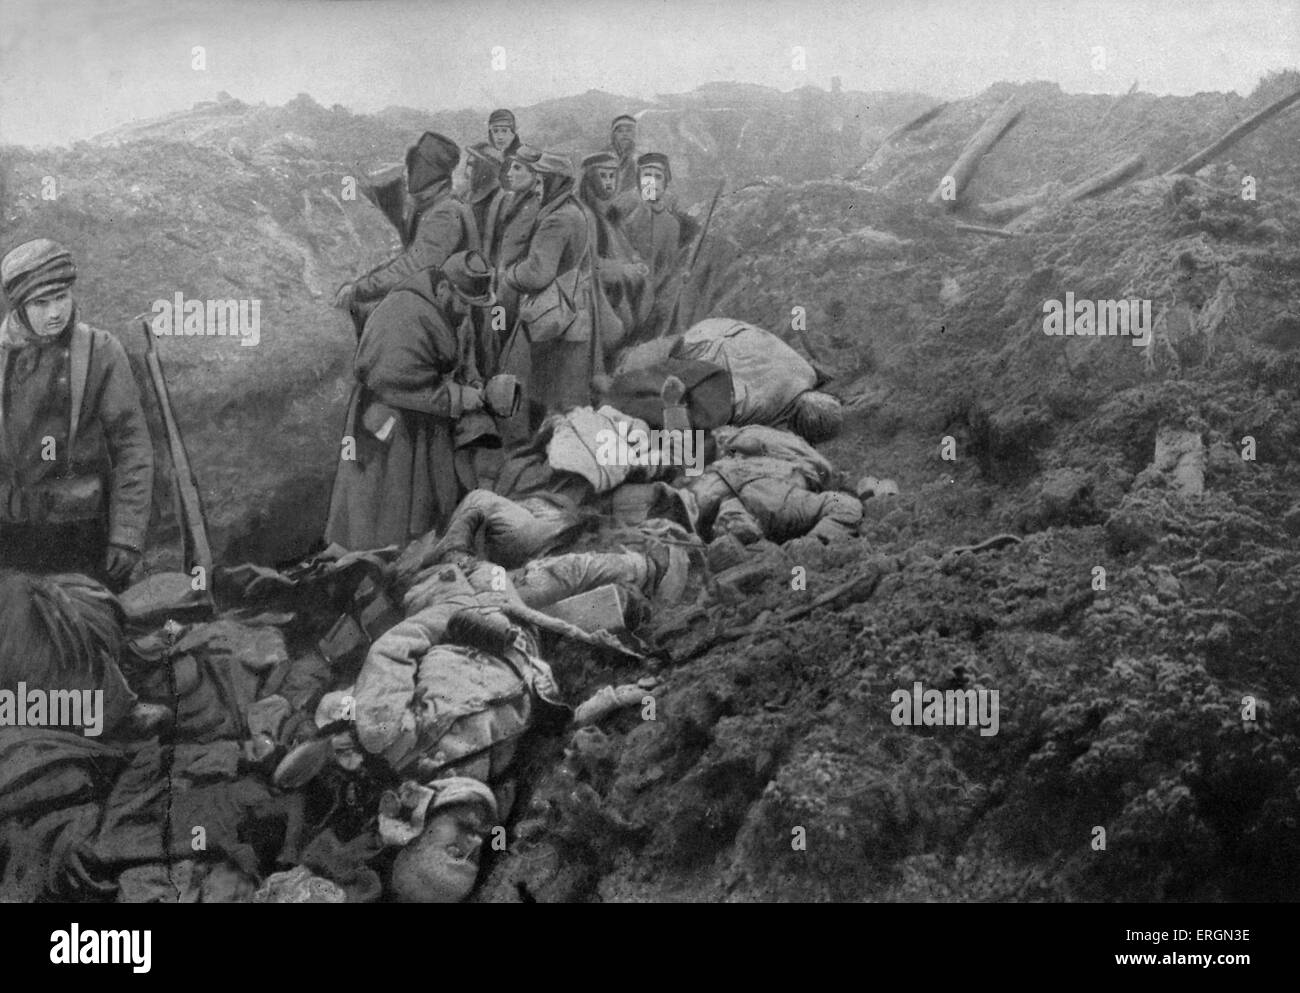 WWI- captured German trenches at Les Eparges. Photo shows dead German soldiers about to be collected and buried. - Stock Image